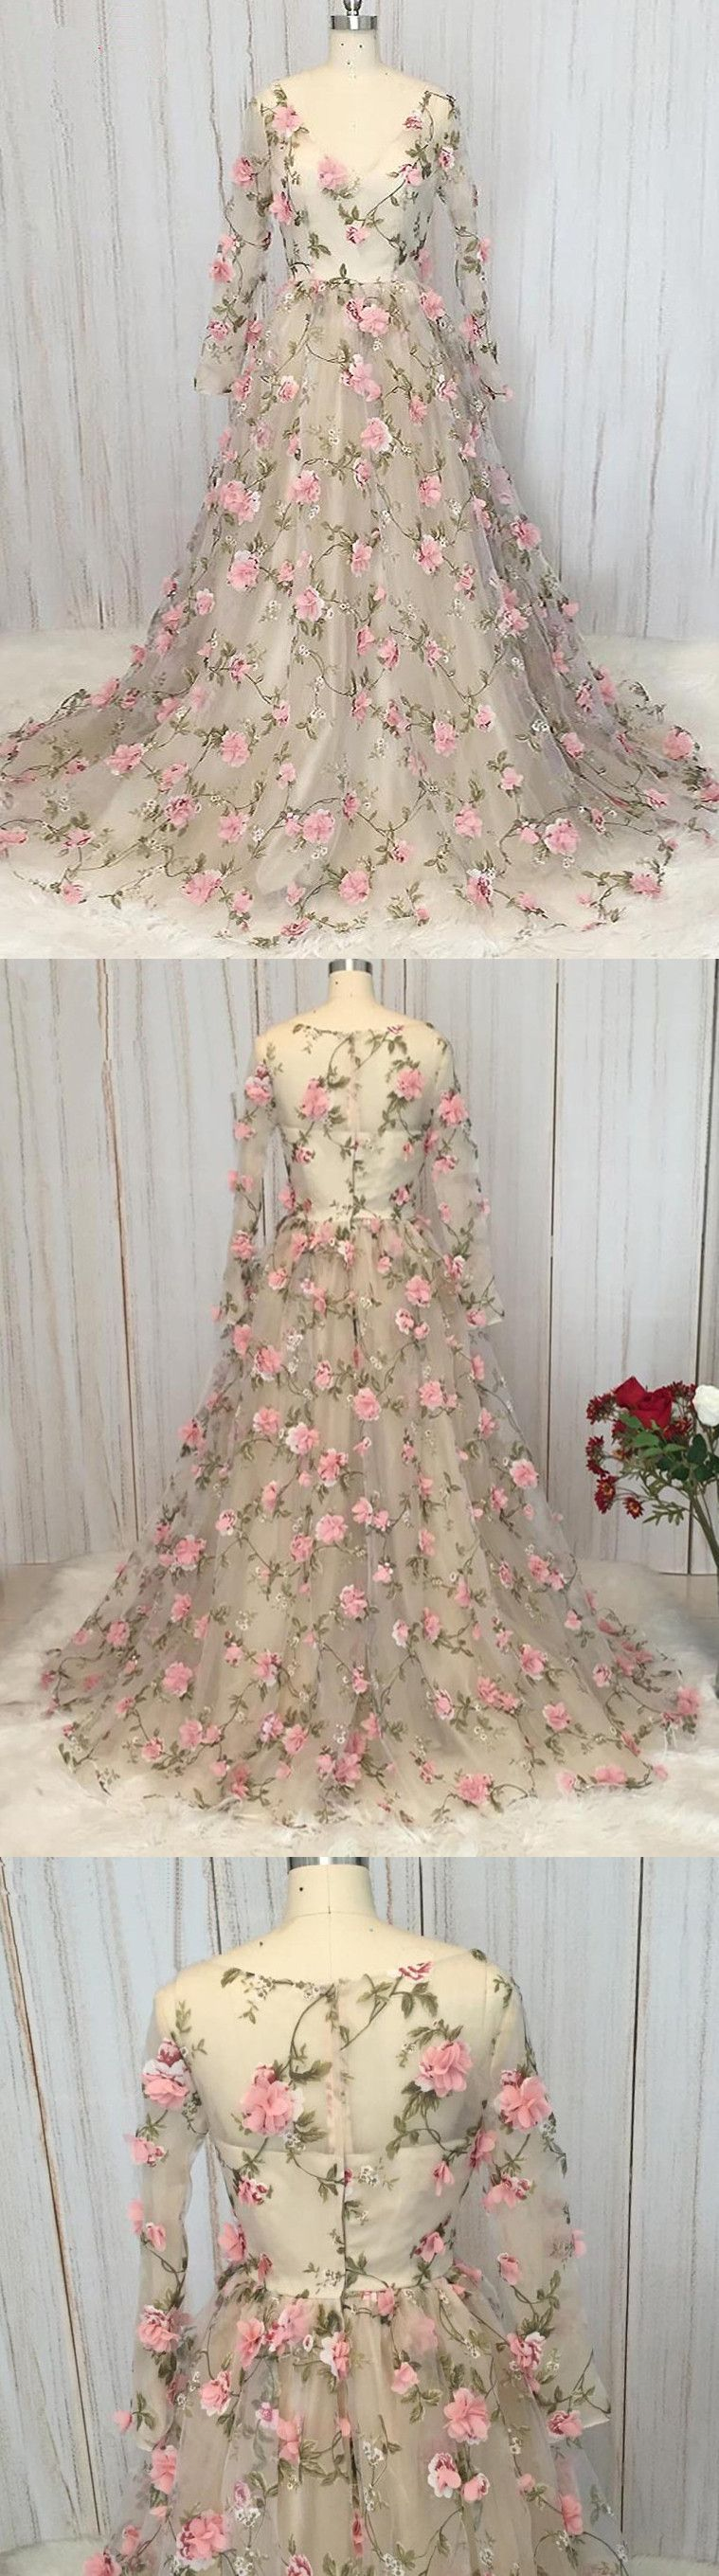 Chic aline v neck prom dress with floral long sleeve prom dresses